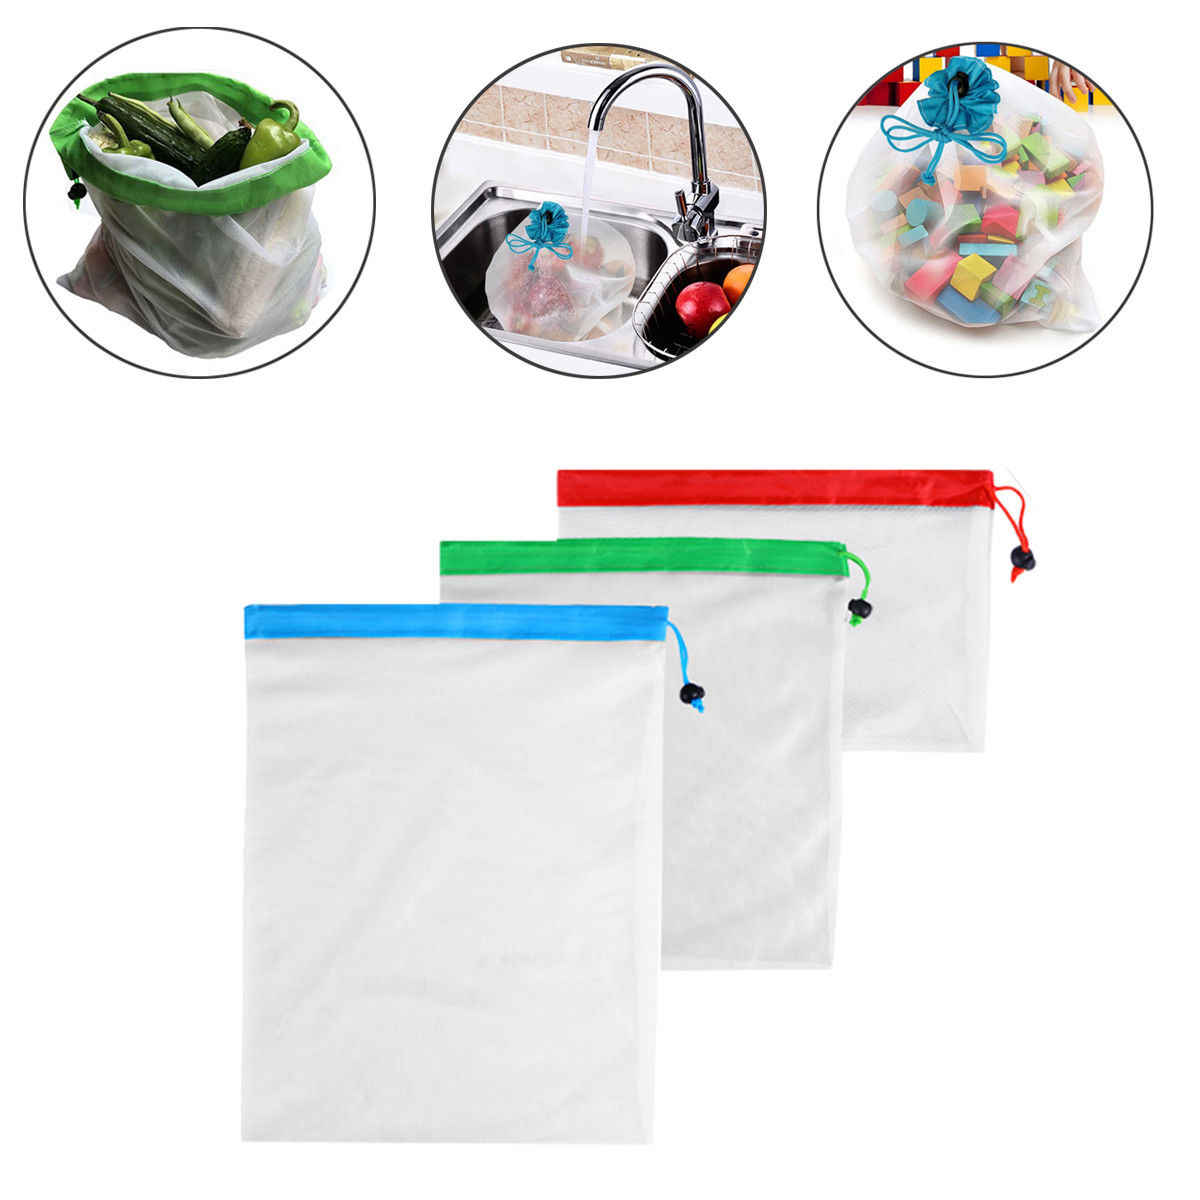 Hot Reusable Mesh Produce Bags Washable Bags for Grocery Shopping Storage Fruit Vegetable Toys Sundries Organizer Storage Bag